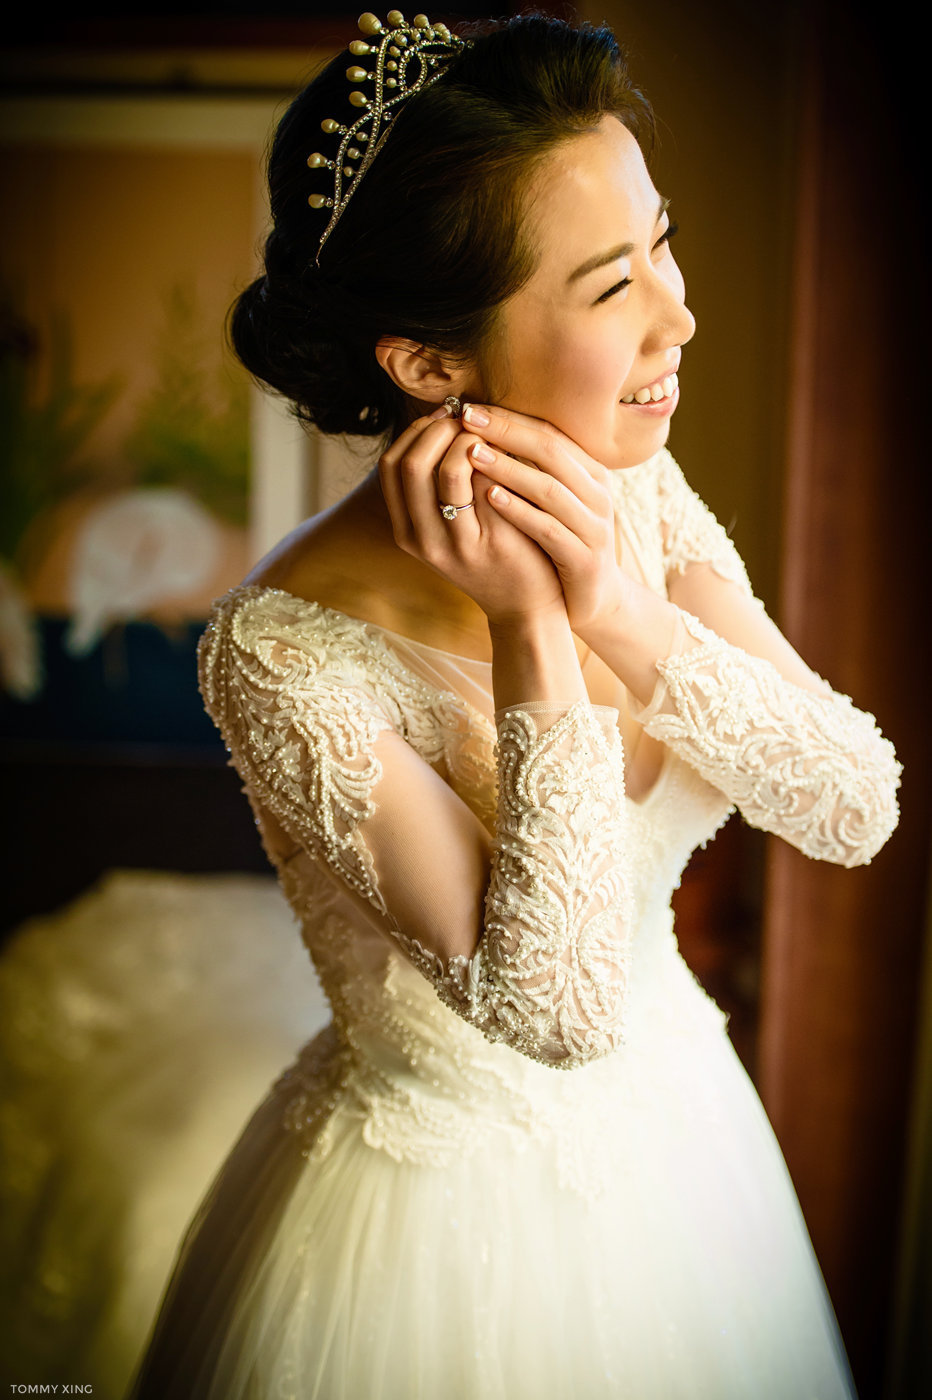 stanford memorial church wedding 旧金山湾区斯坦福教堂婚礼 Tommy Xing Photography 023.jpg